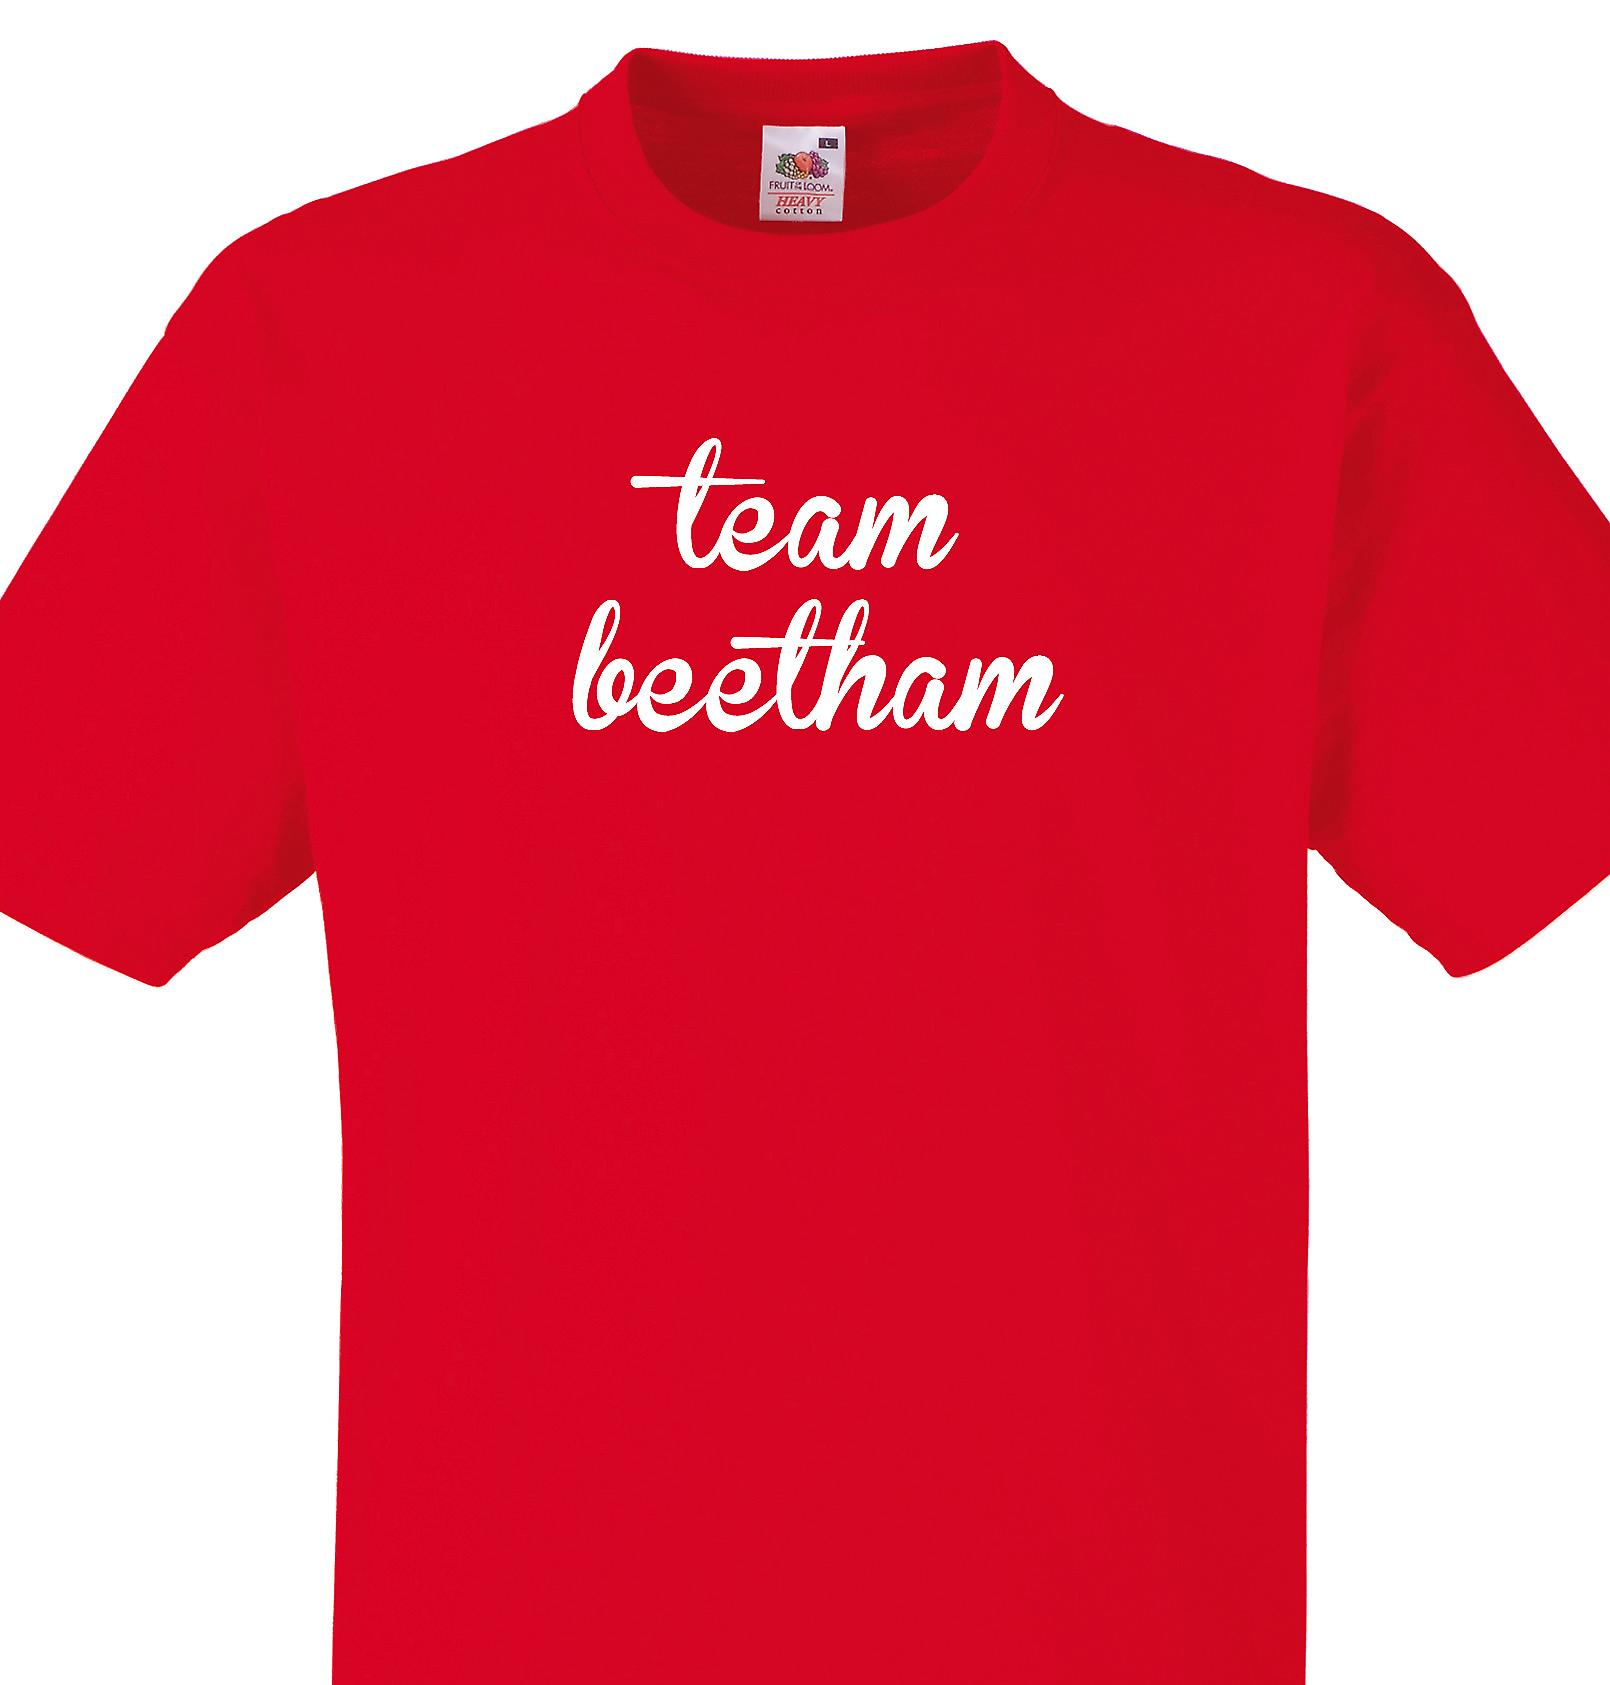 Team Beetham Red T shirt